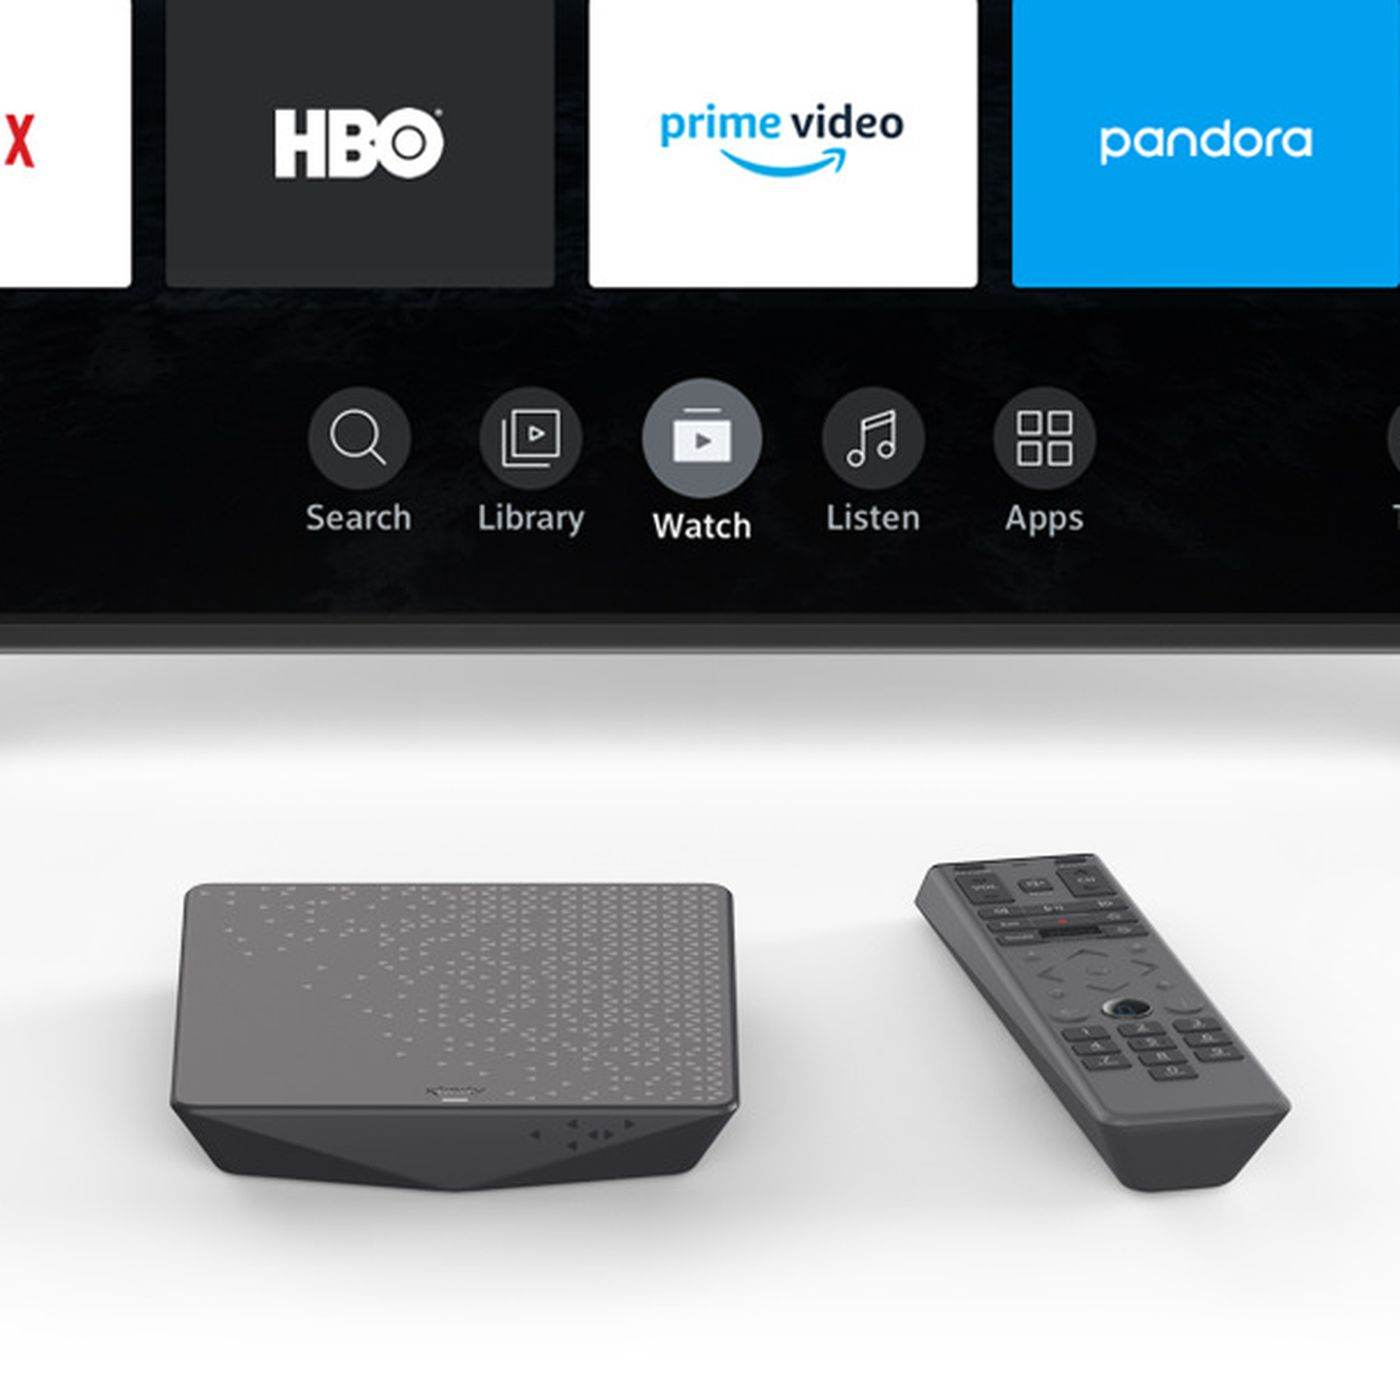 Comcast S Free Streaming Box Actually Requires An Additional 13 Month Fee The Verge